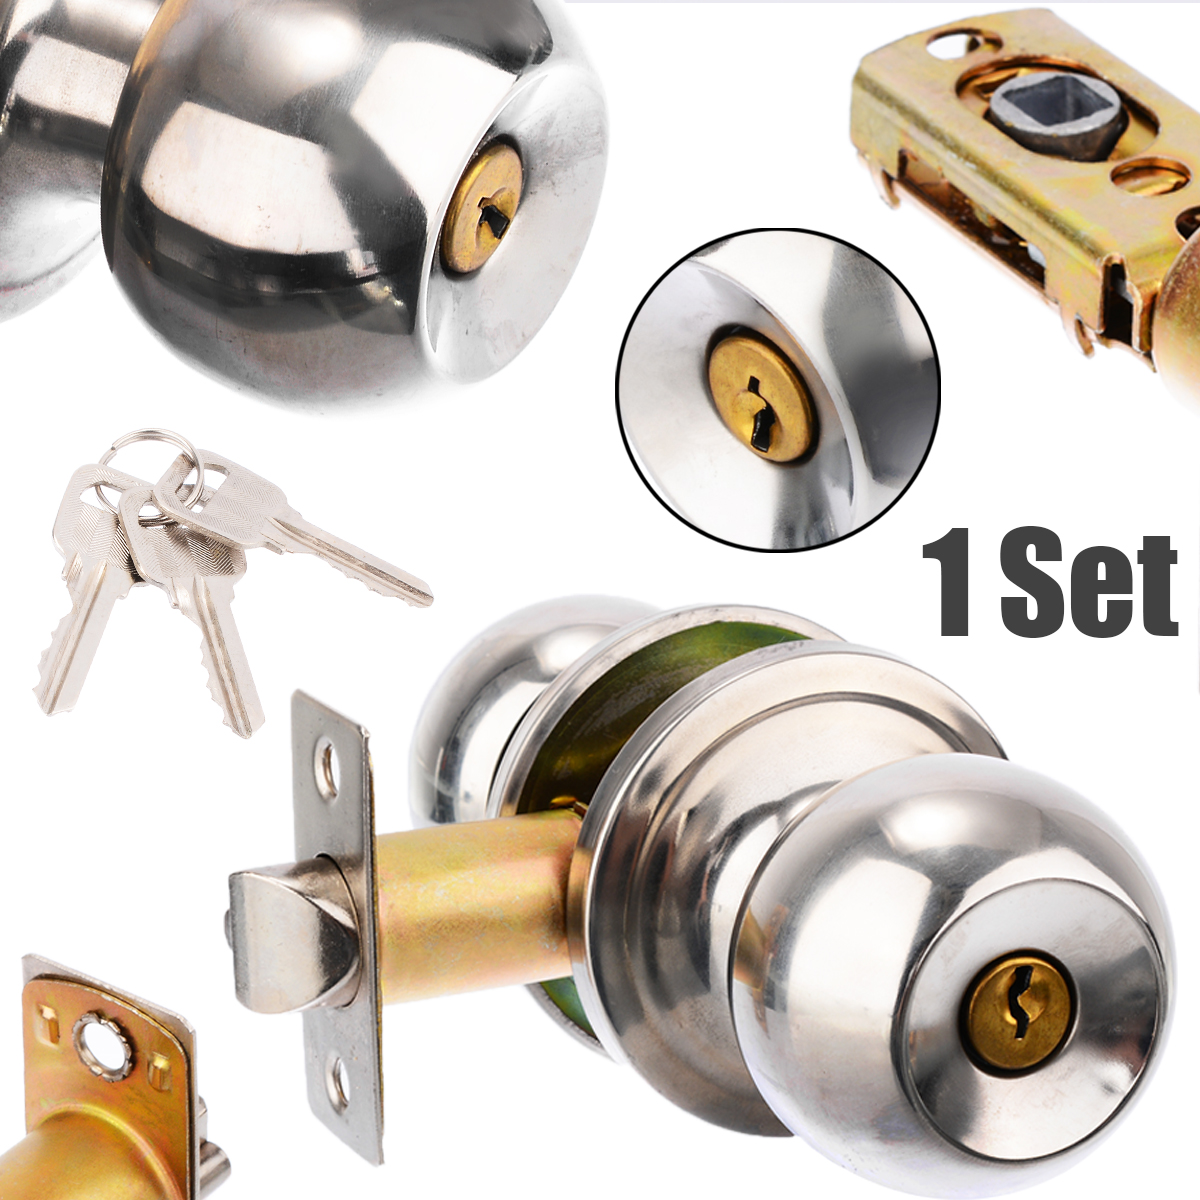 mayitr-stainless-steel-round-ball-privacy-door-knob-set-bathroom-handle-lock-with-key-for-home-door-hardware-supplies